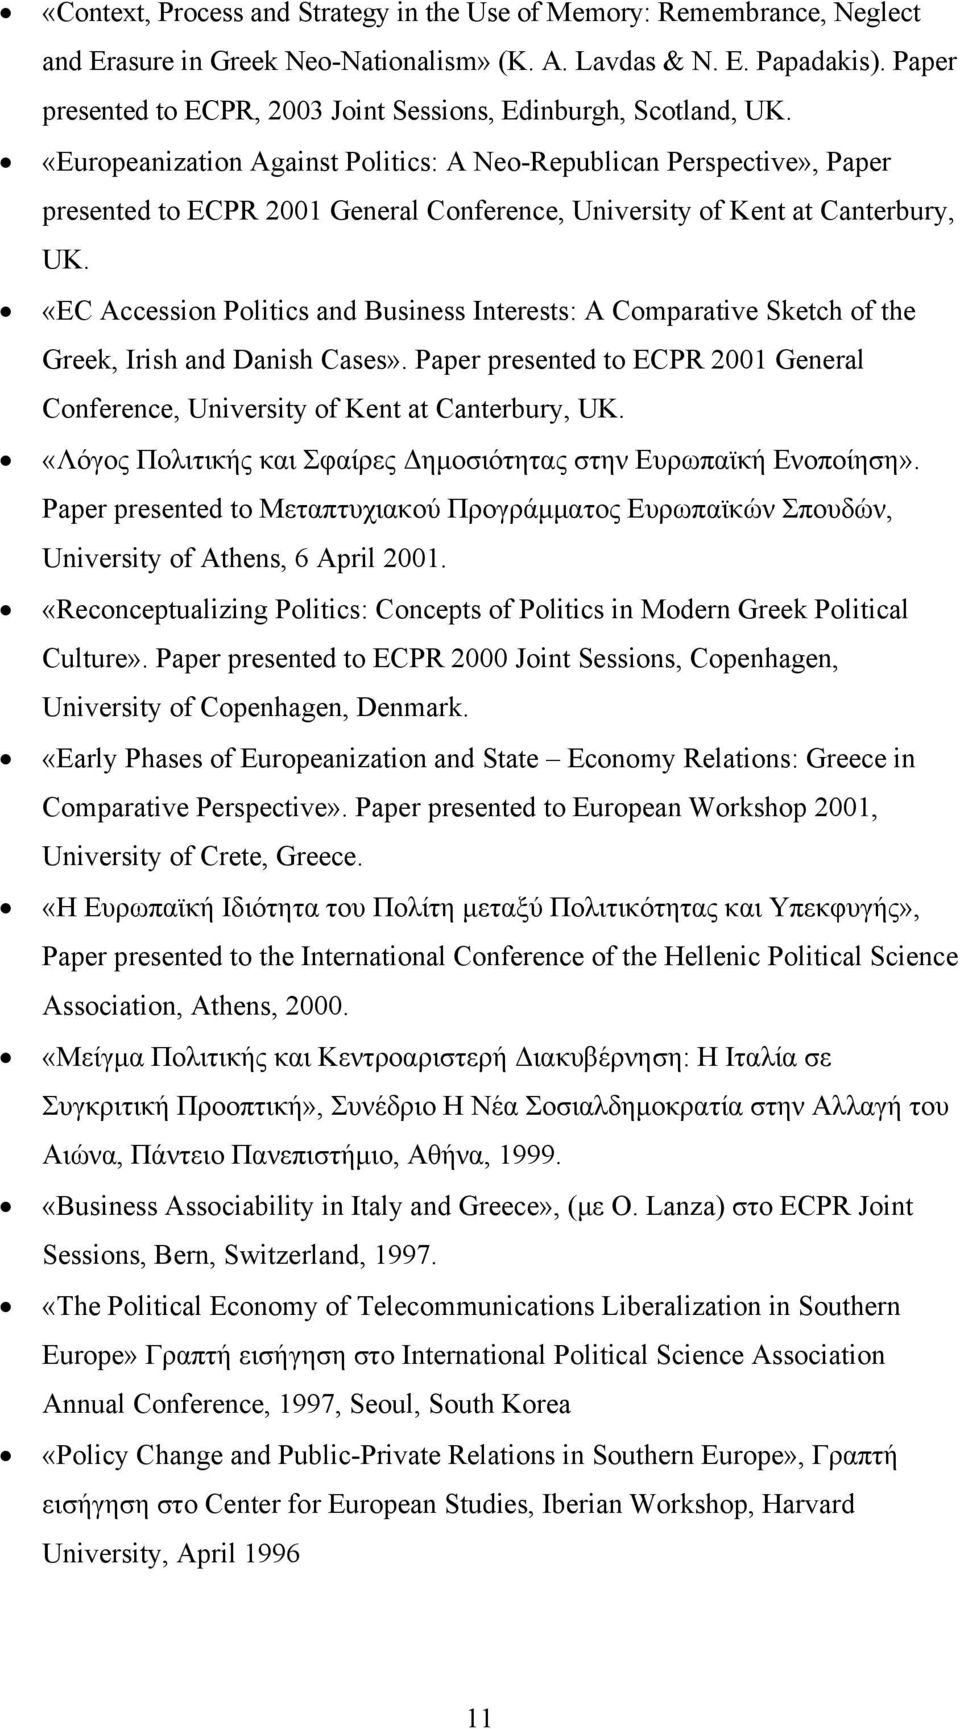 «Europeanization Against Politics: A Neo-Republican Perspective», Paper presented to ECPR 2001 General Conference, University of Kent at Canterbury, UK.